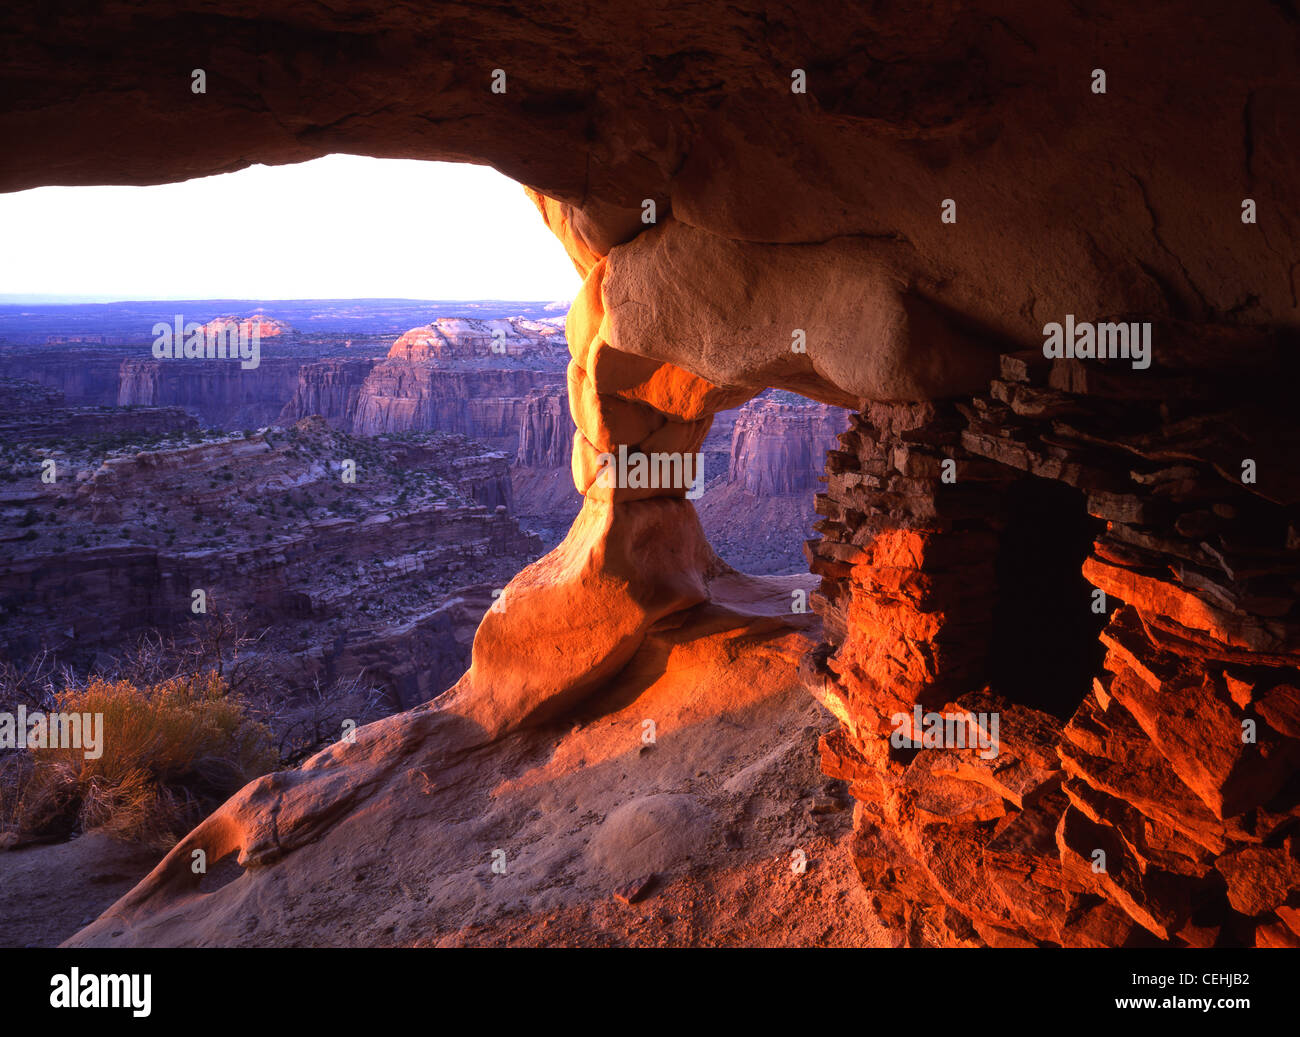 Anasazi ruins on Aztec Butte in Island in the Sky district of Canyonlands National Park, Utah, USA - Stock Image